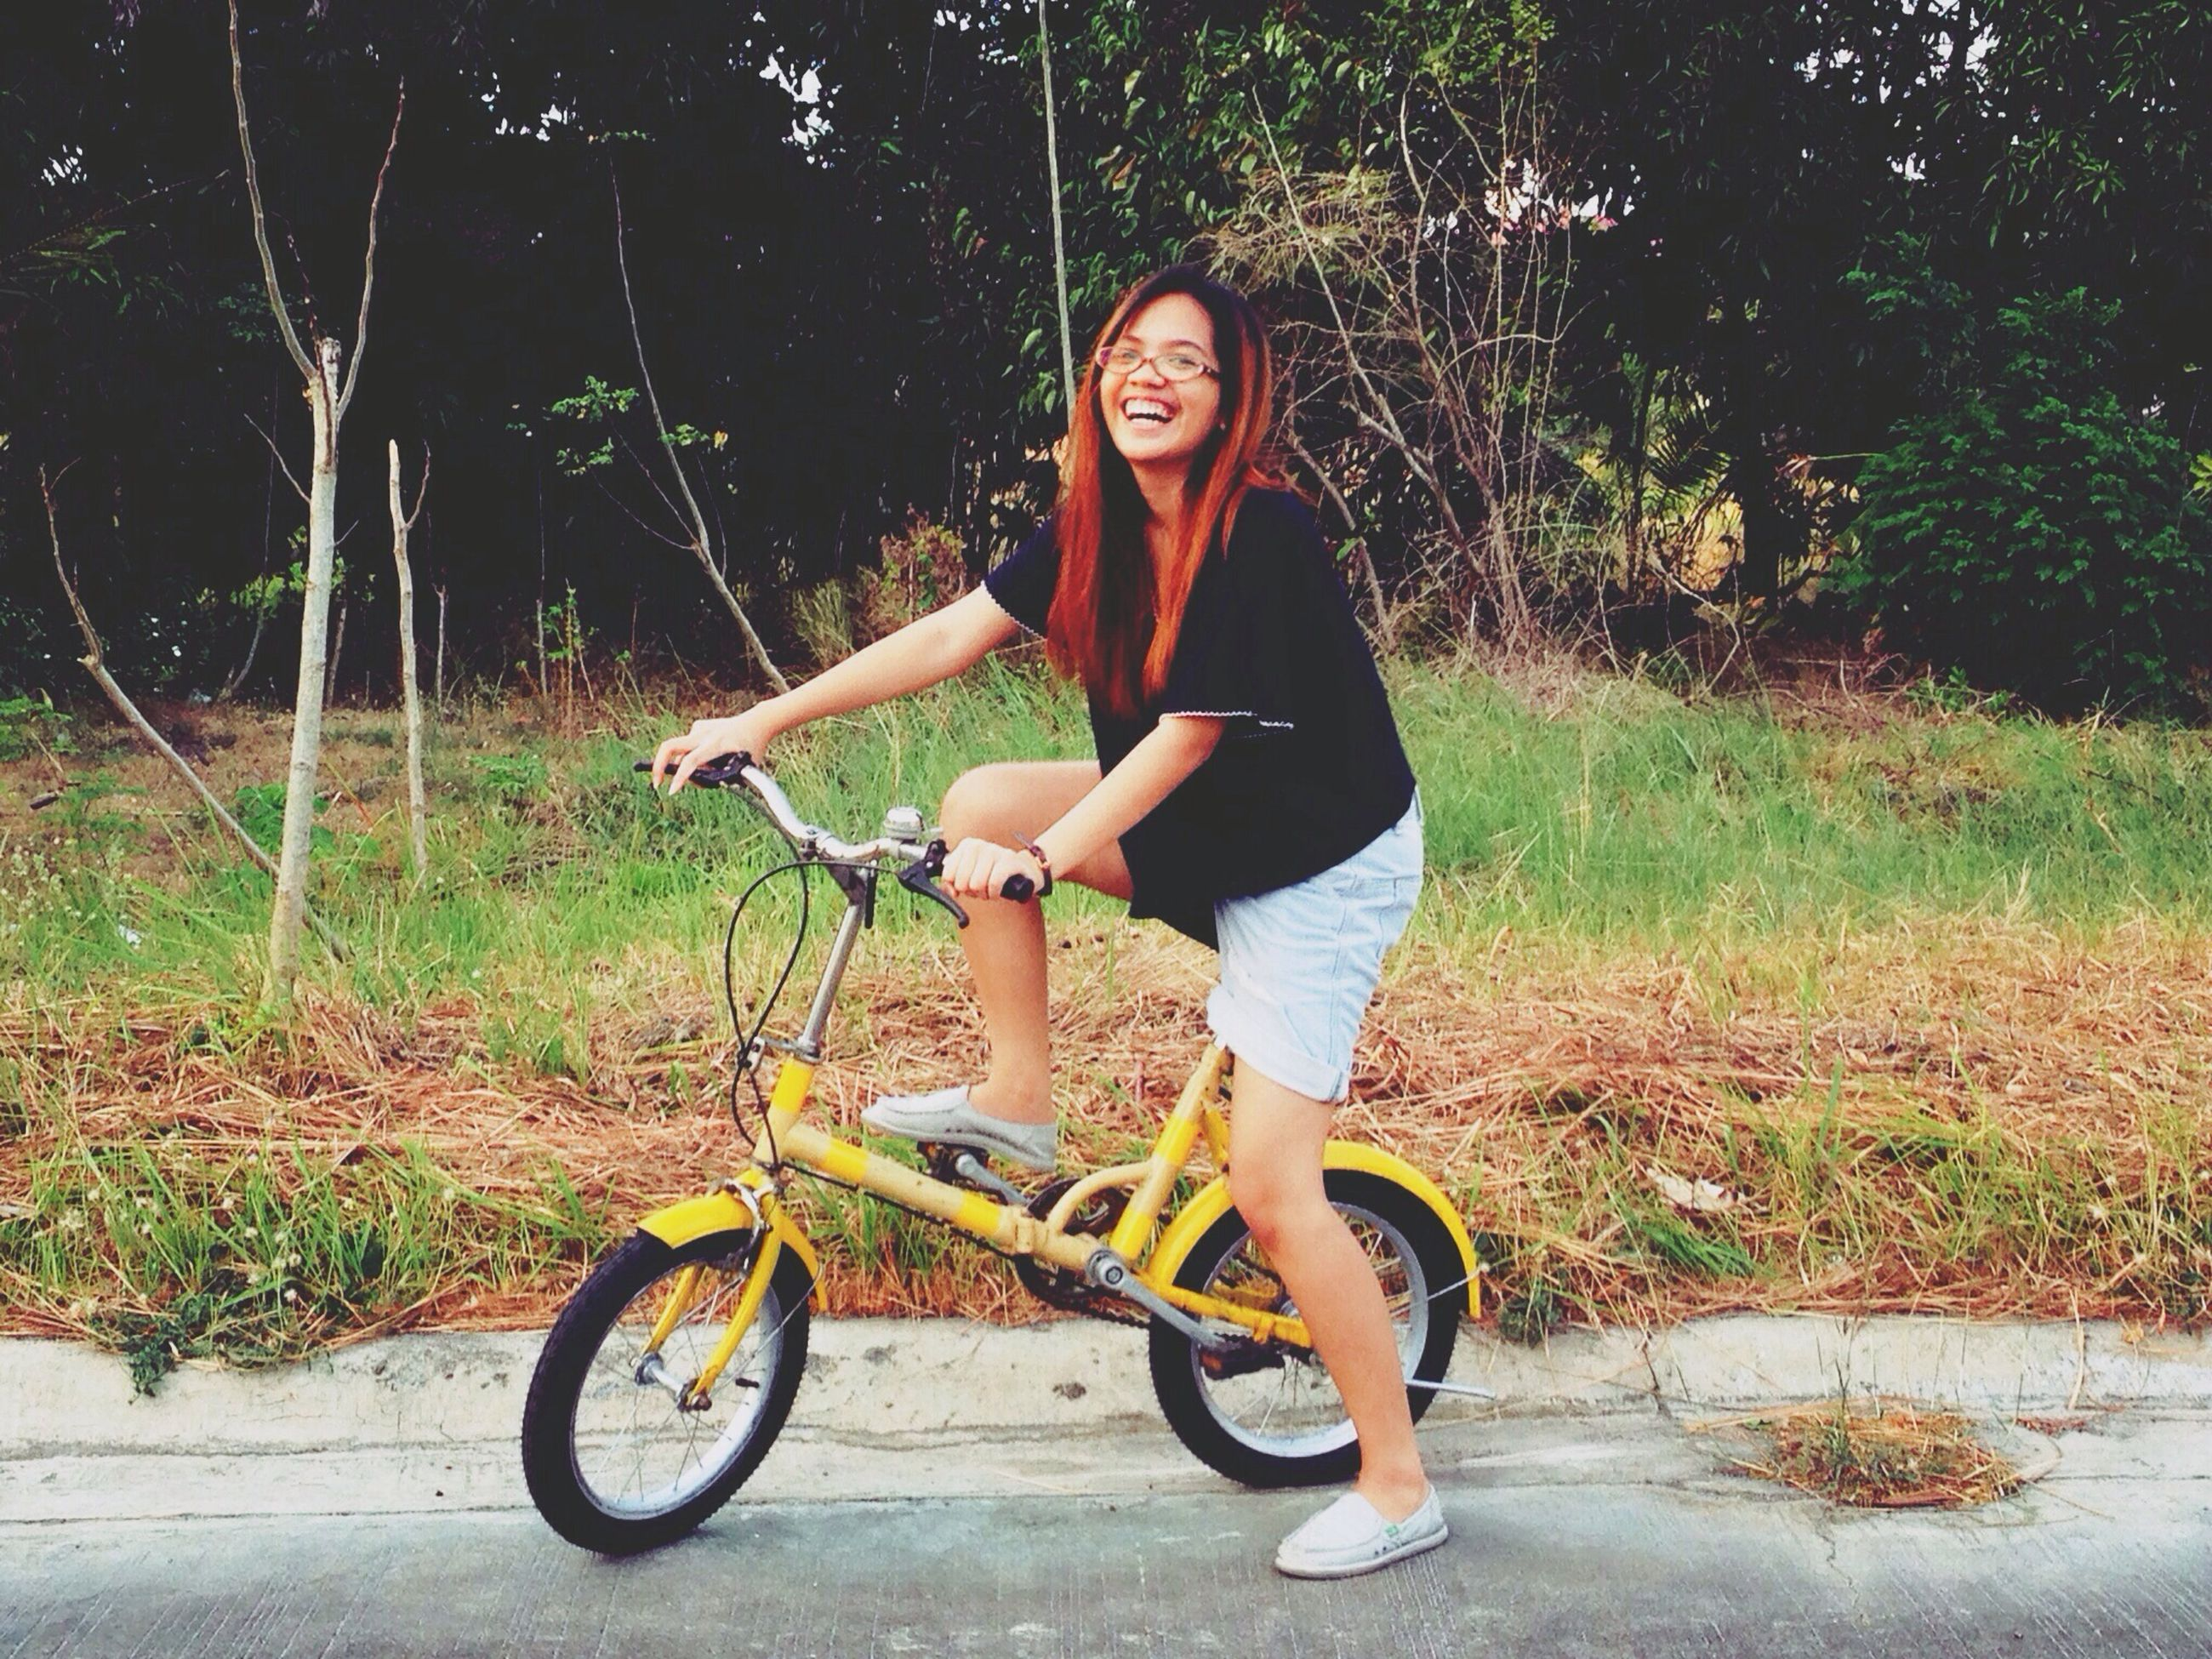 young adult, full length, casual clothing, person, lifestyles, tree, front view, leisure activity, young women, looking at camera, standing, portrait, outdoors, bicycle, plant, holding, smiling, leaning